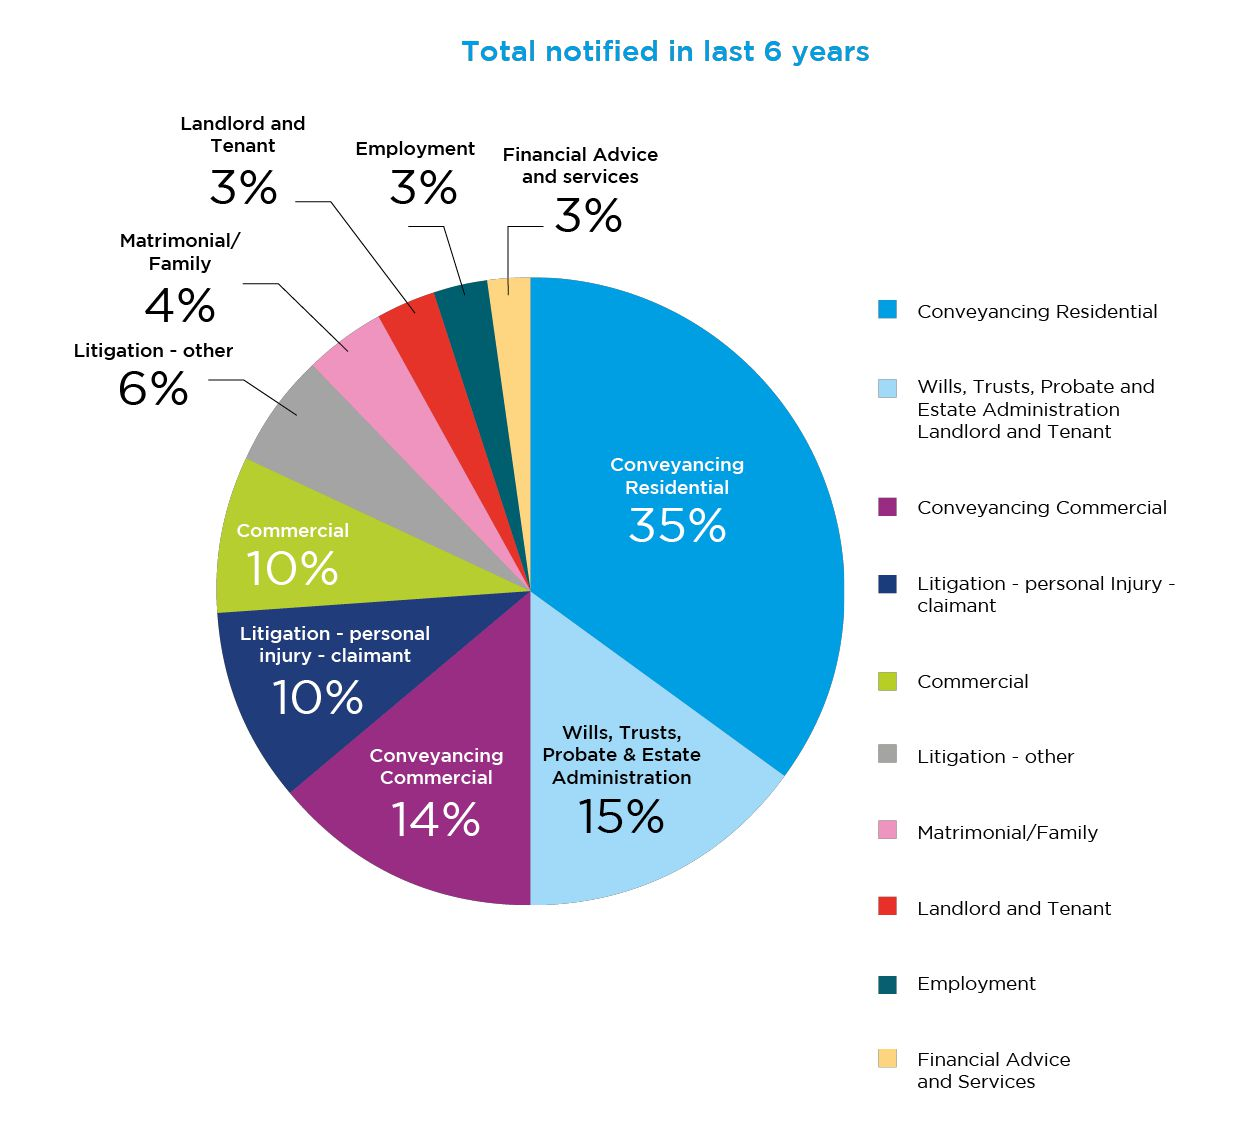 Which practice areas generate the most professional indemnity claims